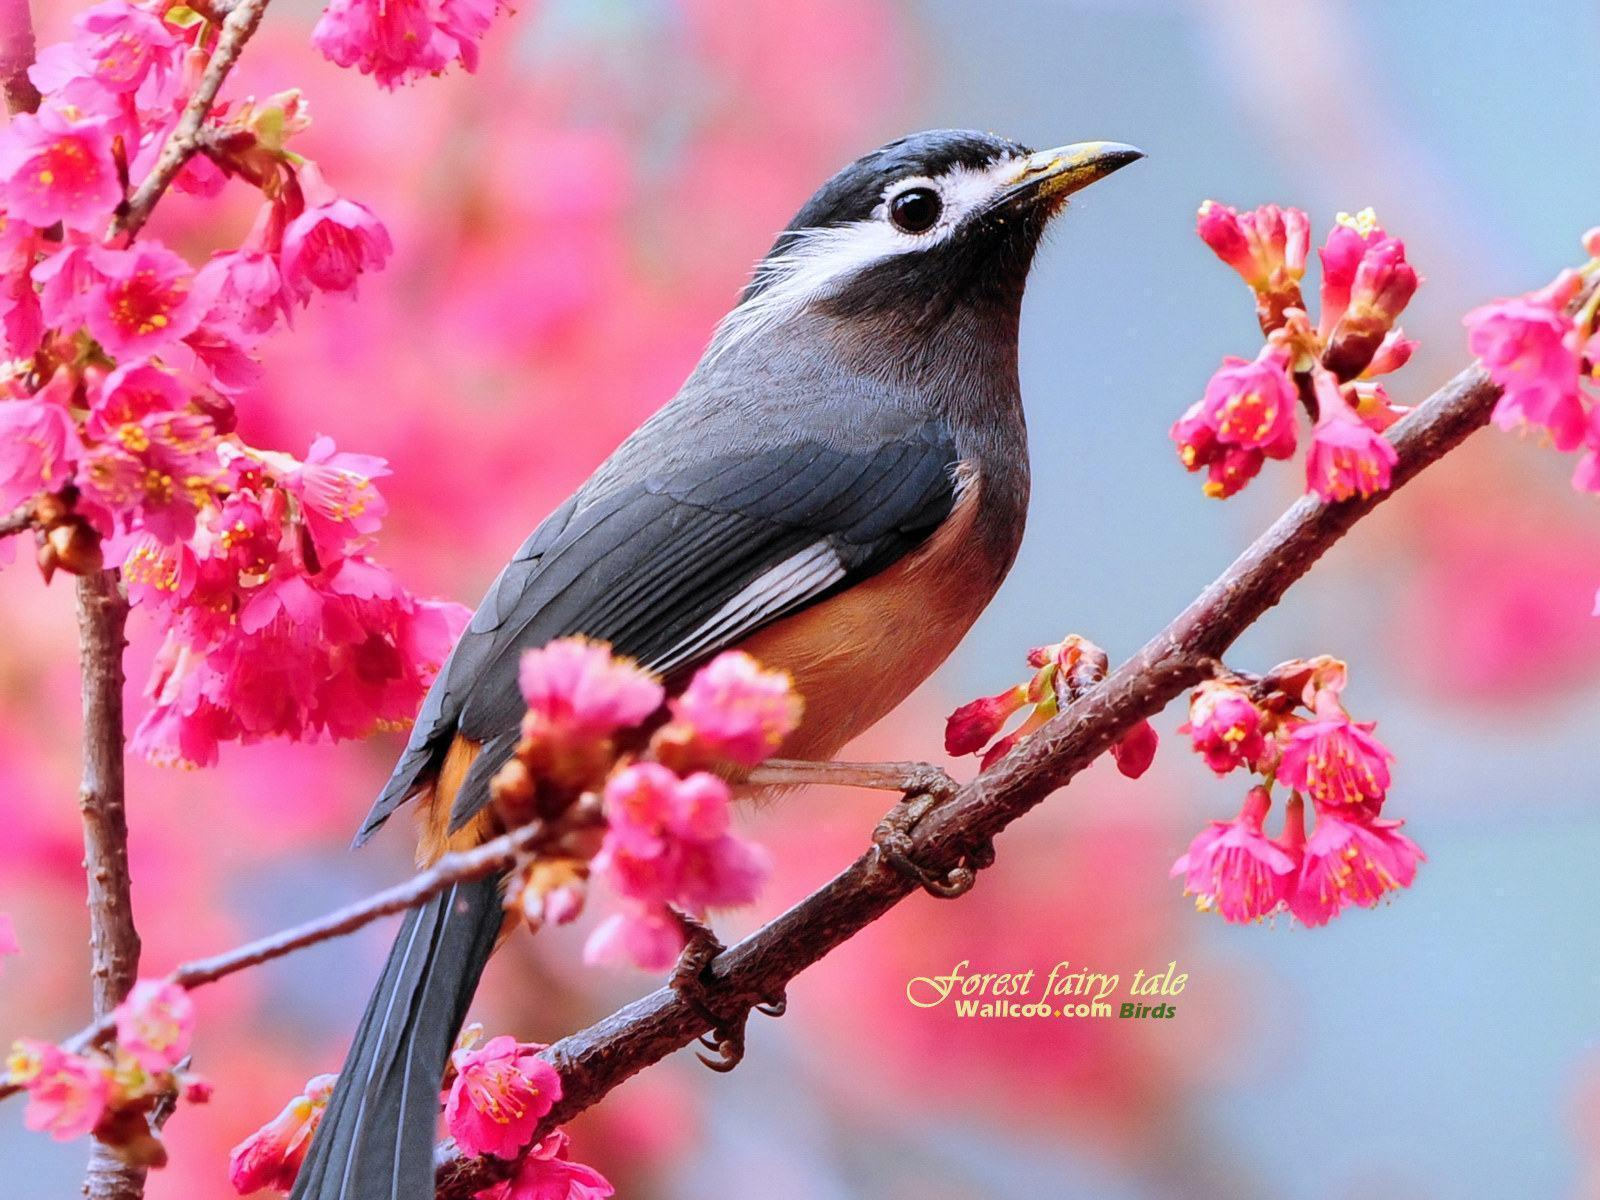 Wallpaper download free image search - Cute Birds Wallpapers Download Free Cute Birds Desktop Laptop